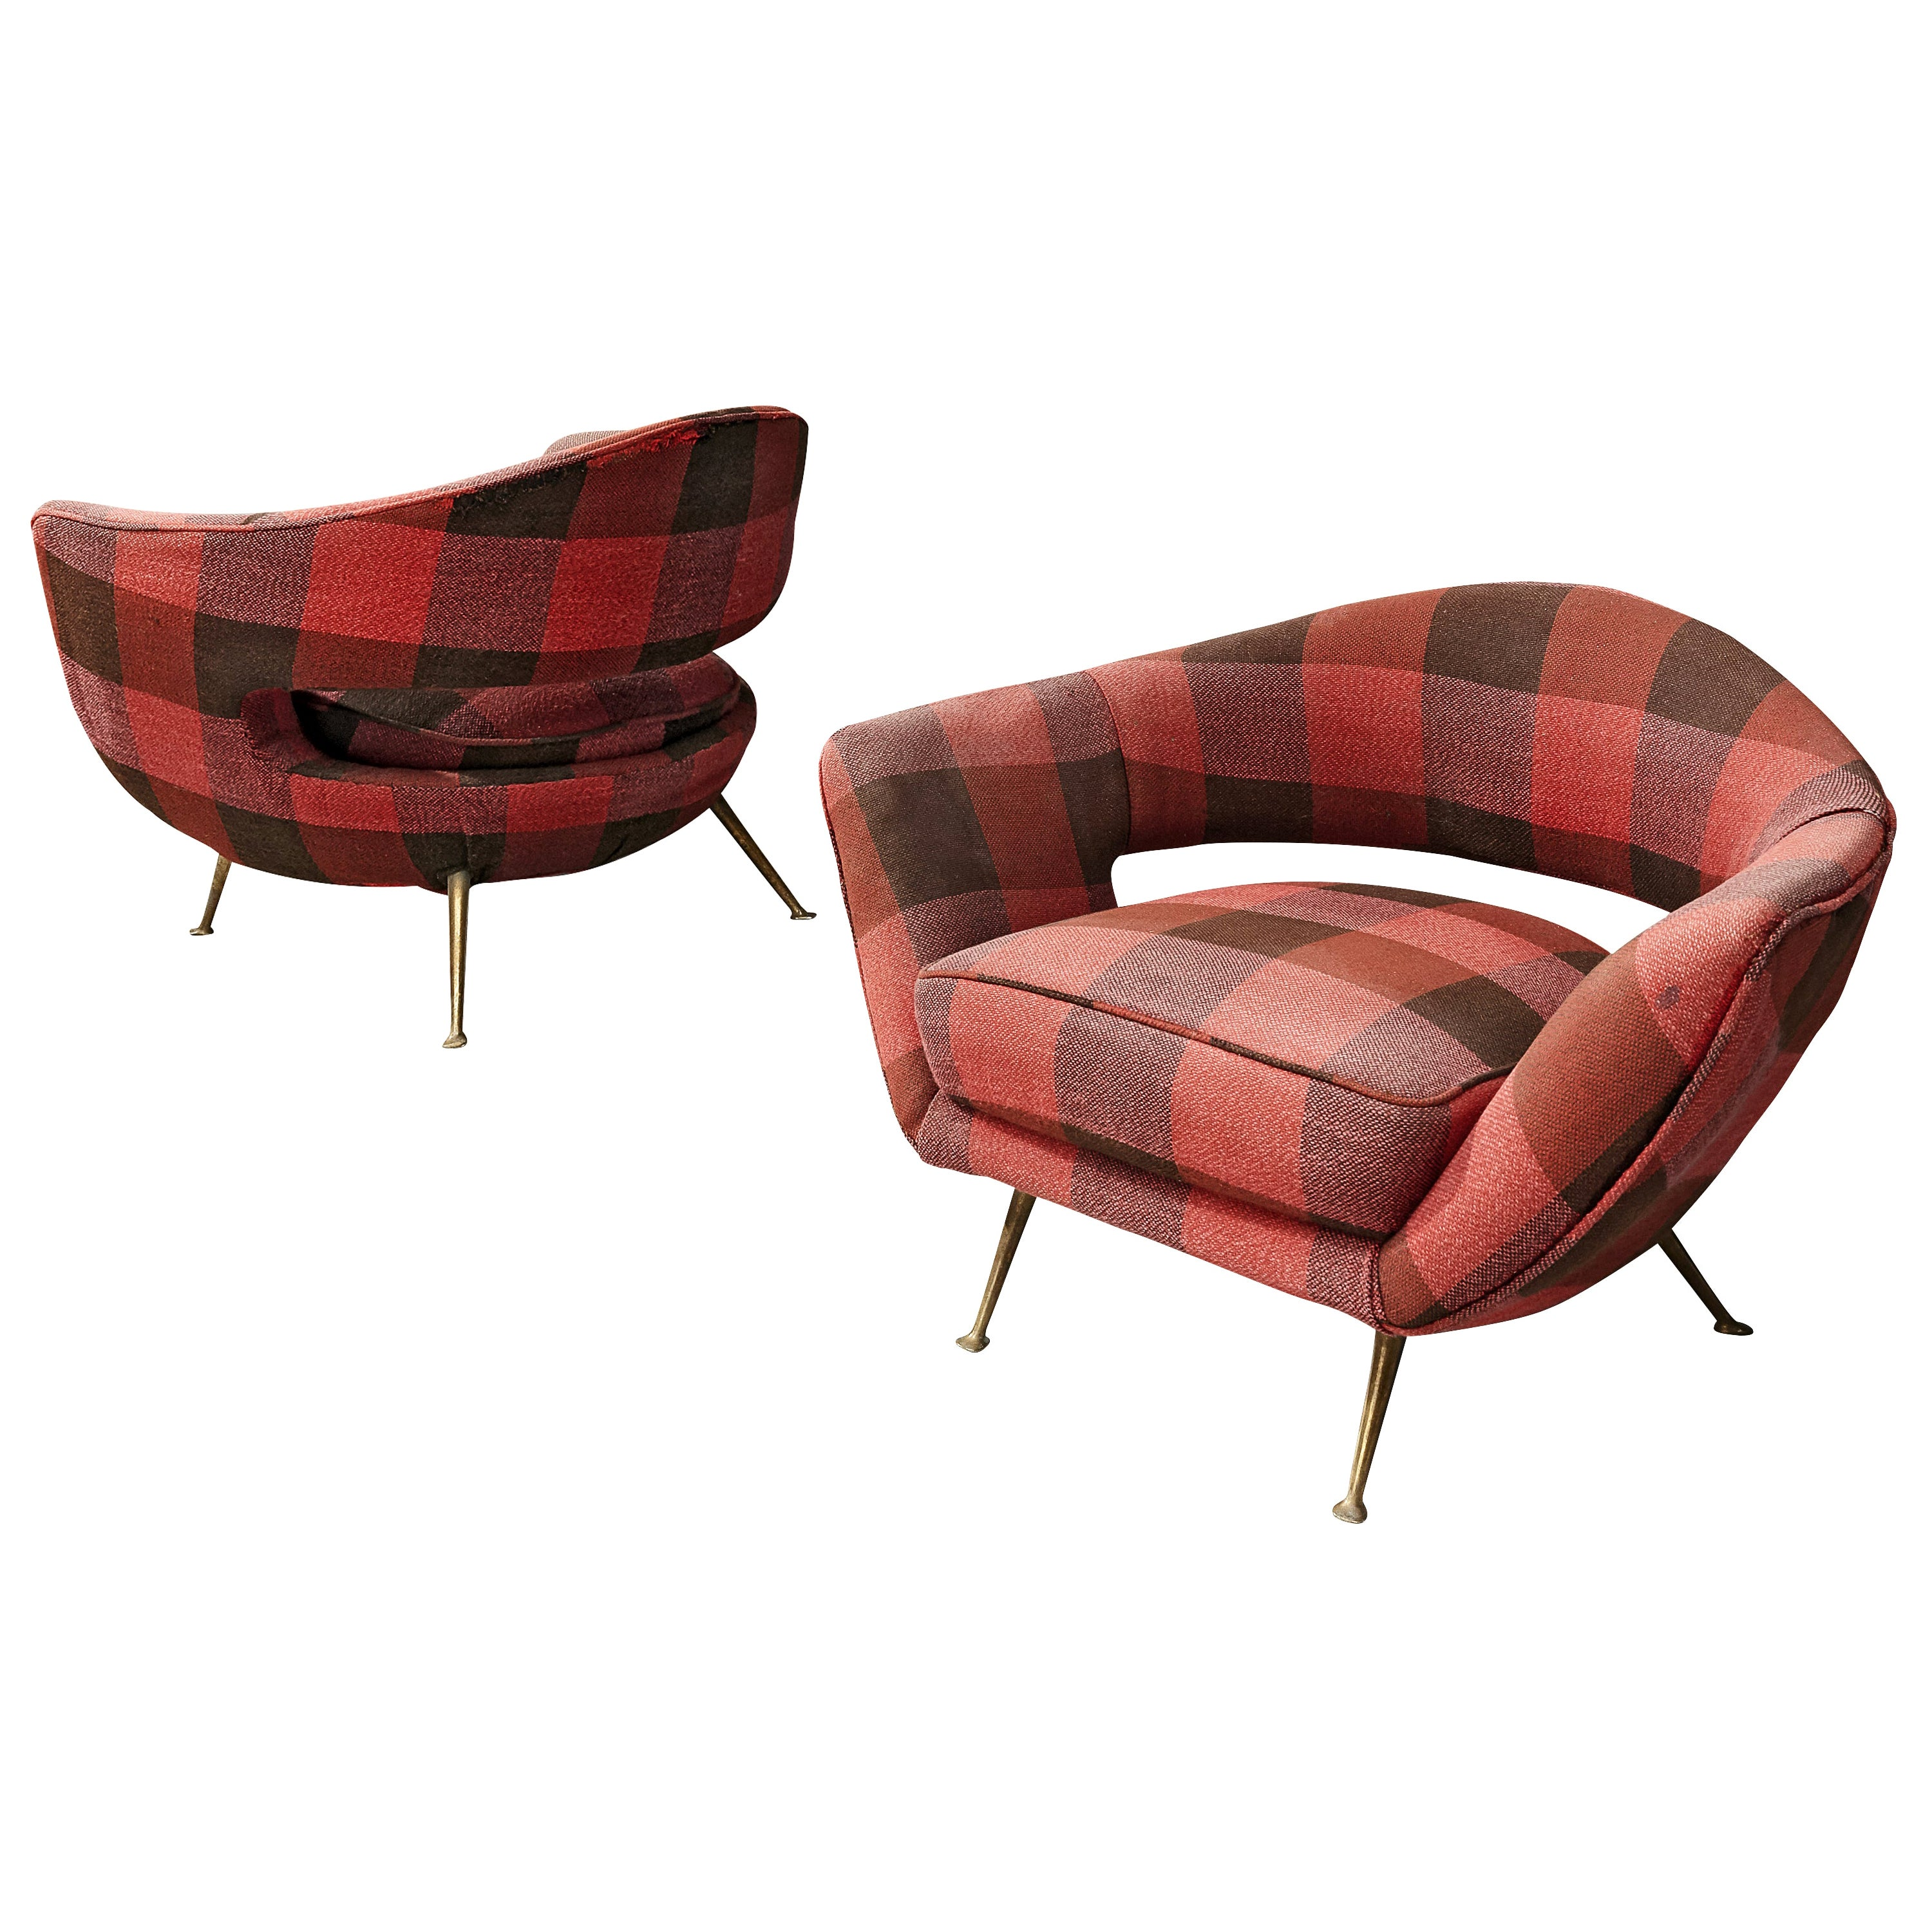 Pair of Italian Lounge Chairs in Checkered Upholstery